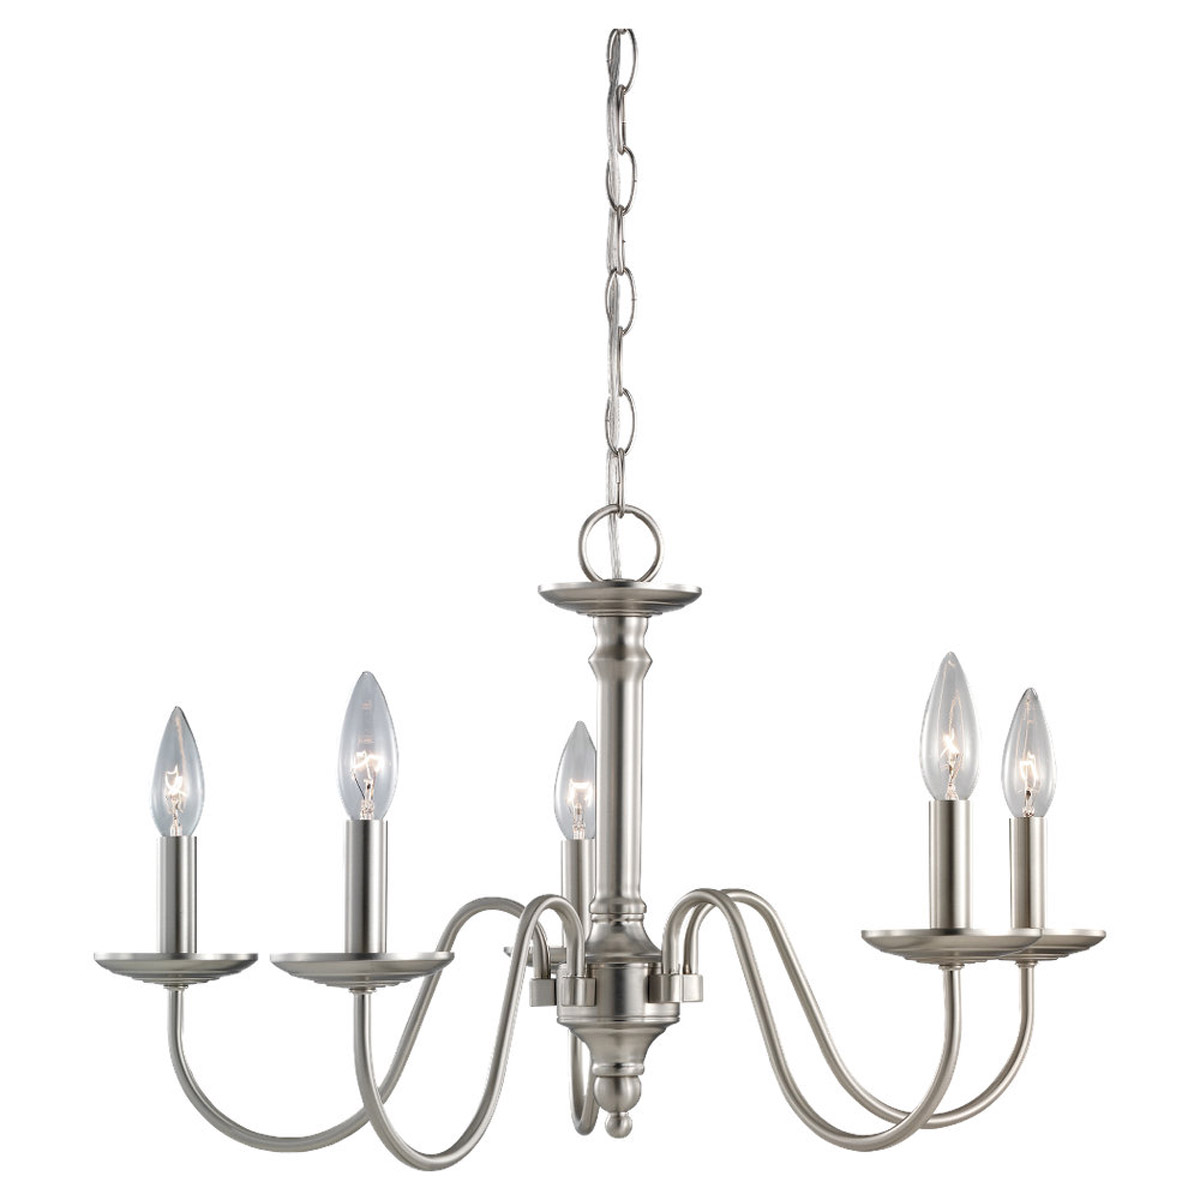 Sea Gull Lighting Wellington 5 Light Chandelier in Brushed Nickel 31656-962